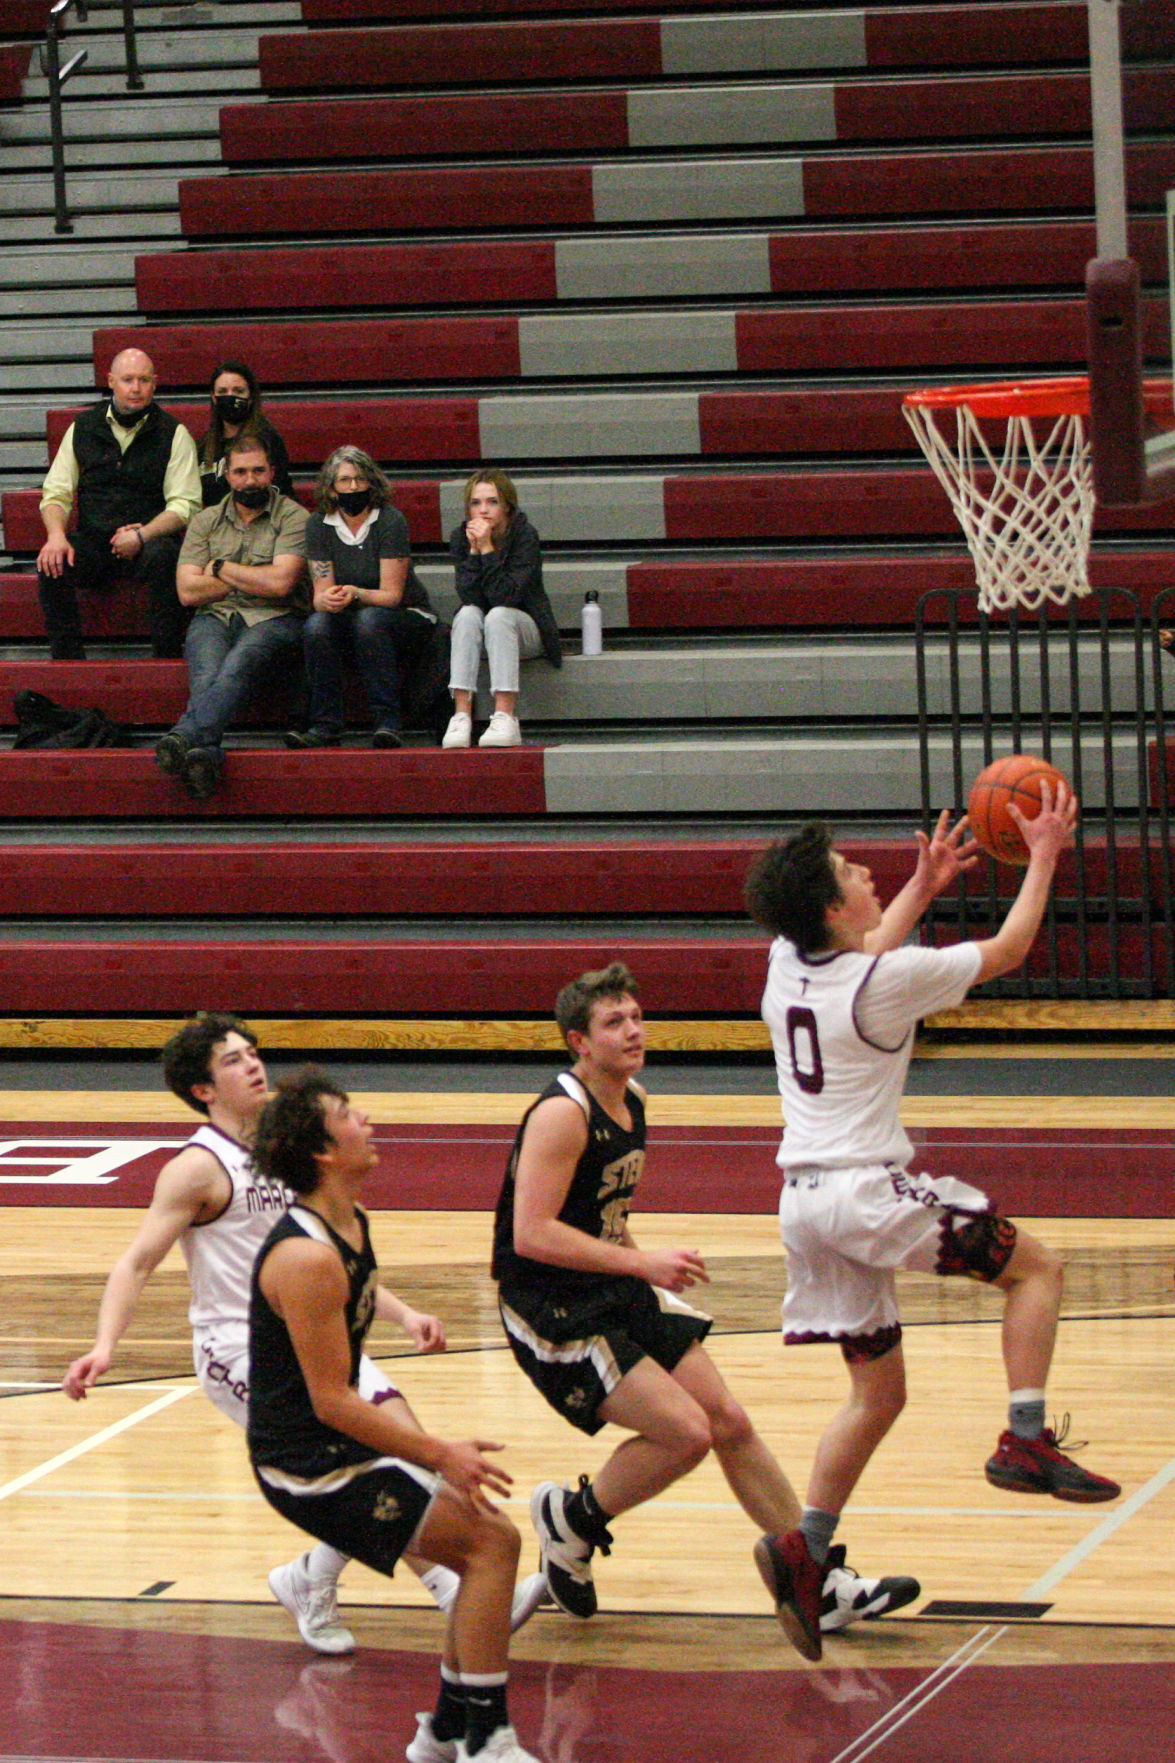 Bryson Sestrich; Butte Central vs. Stevensville